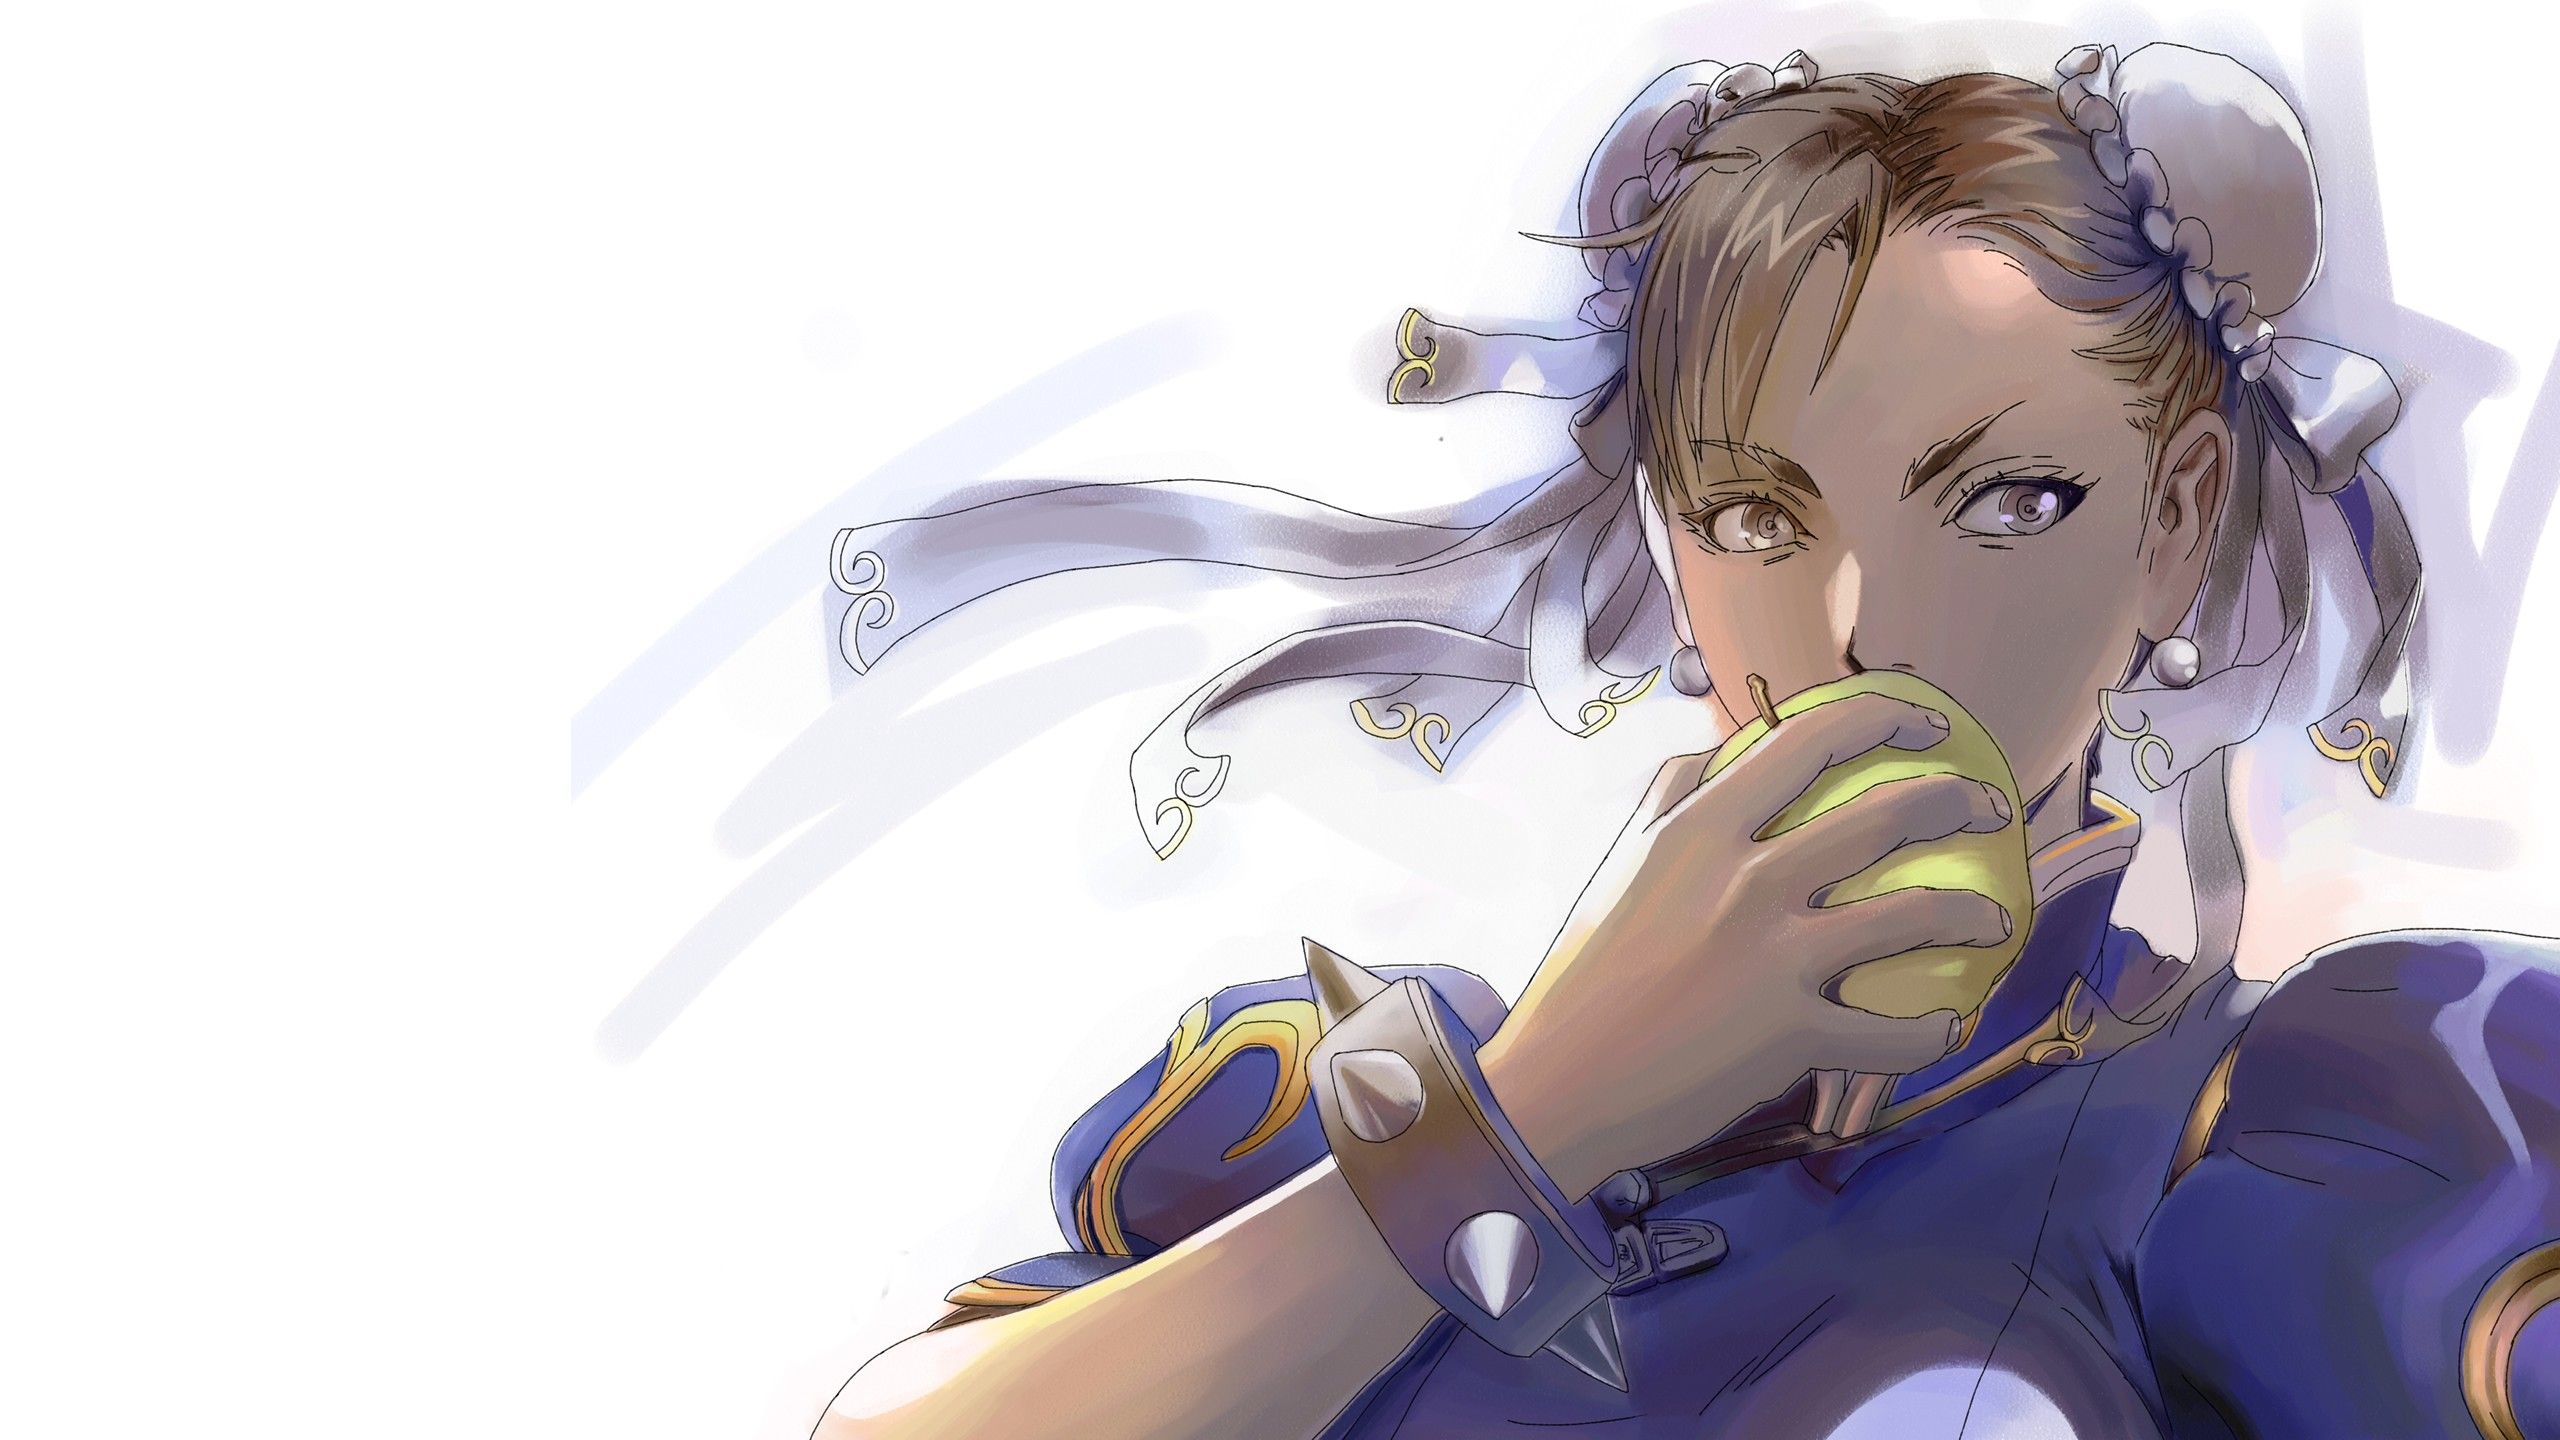 Street Fighter Anime Girls Eating Video Games Chun